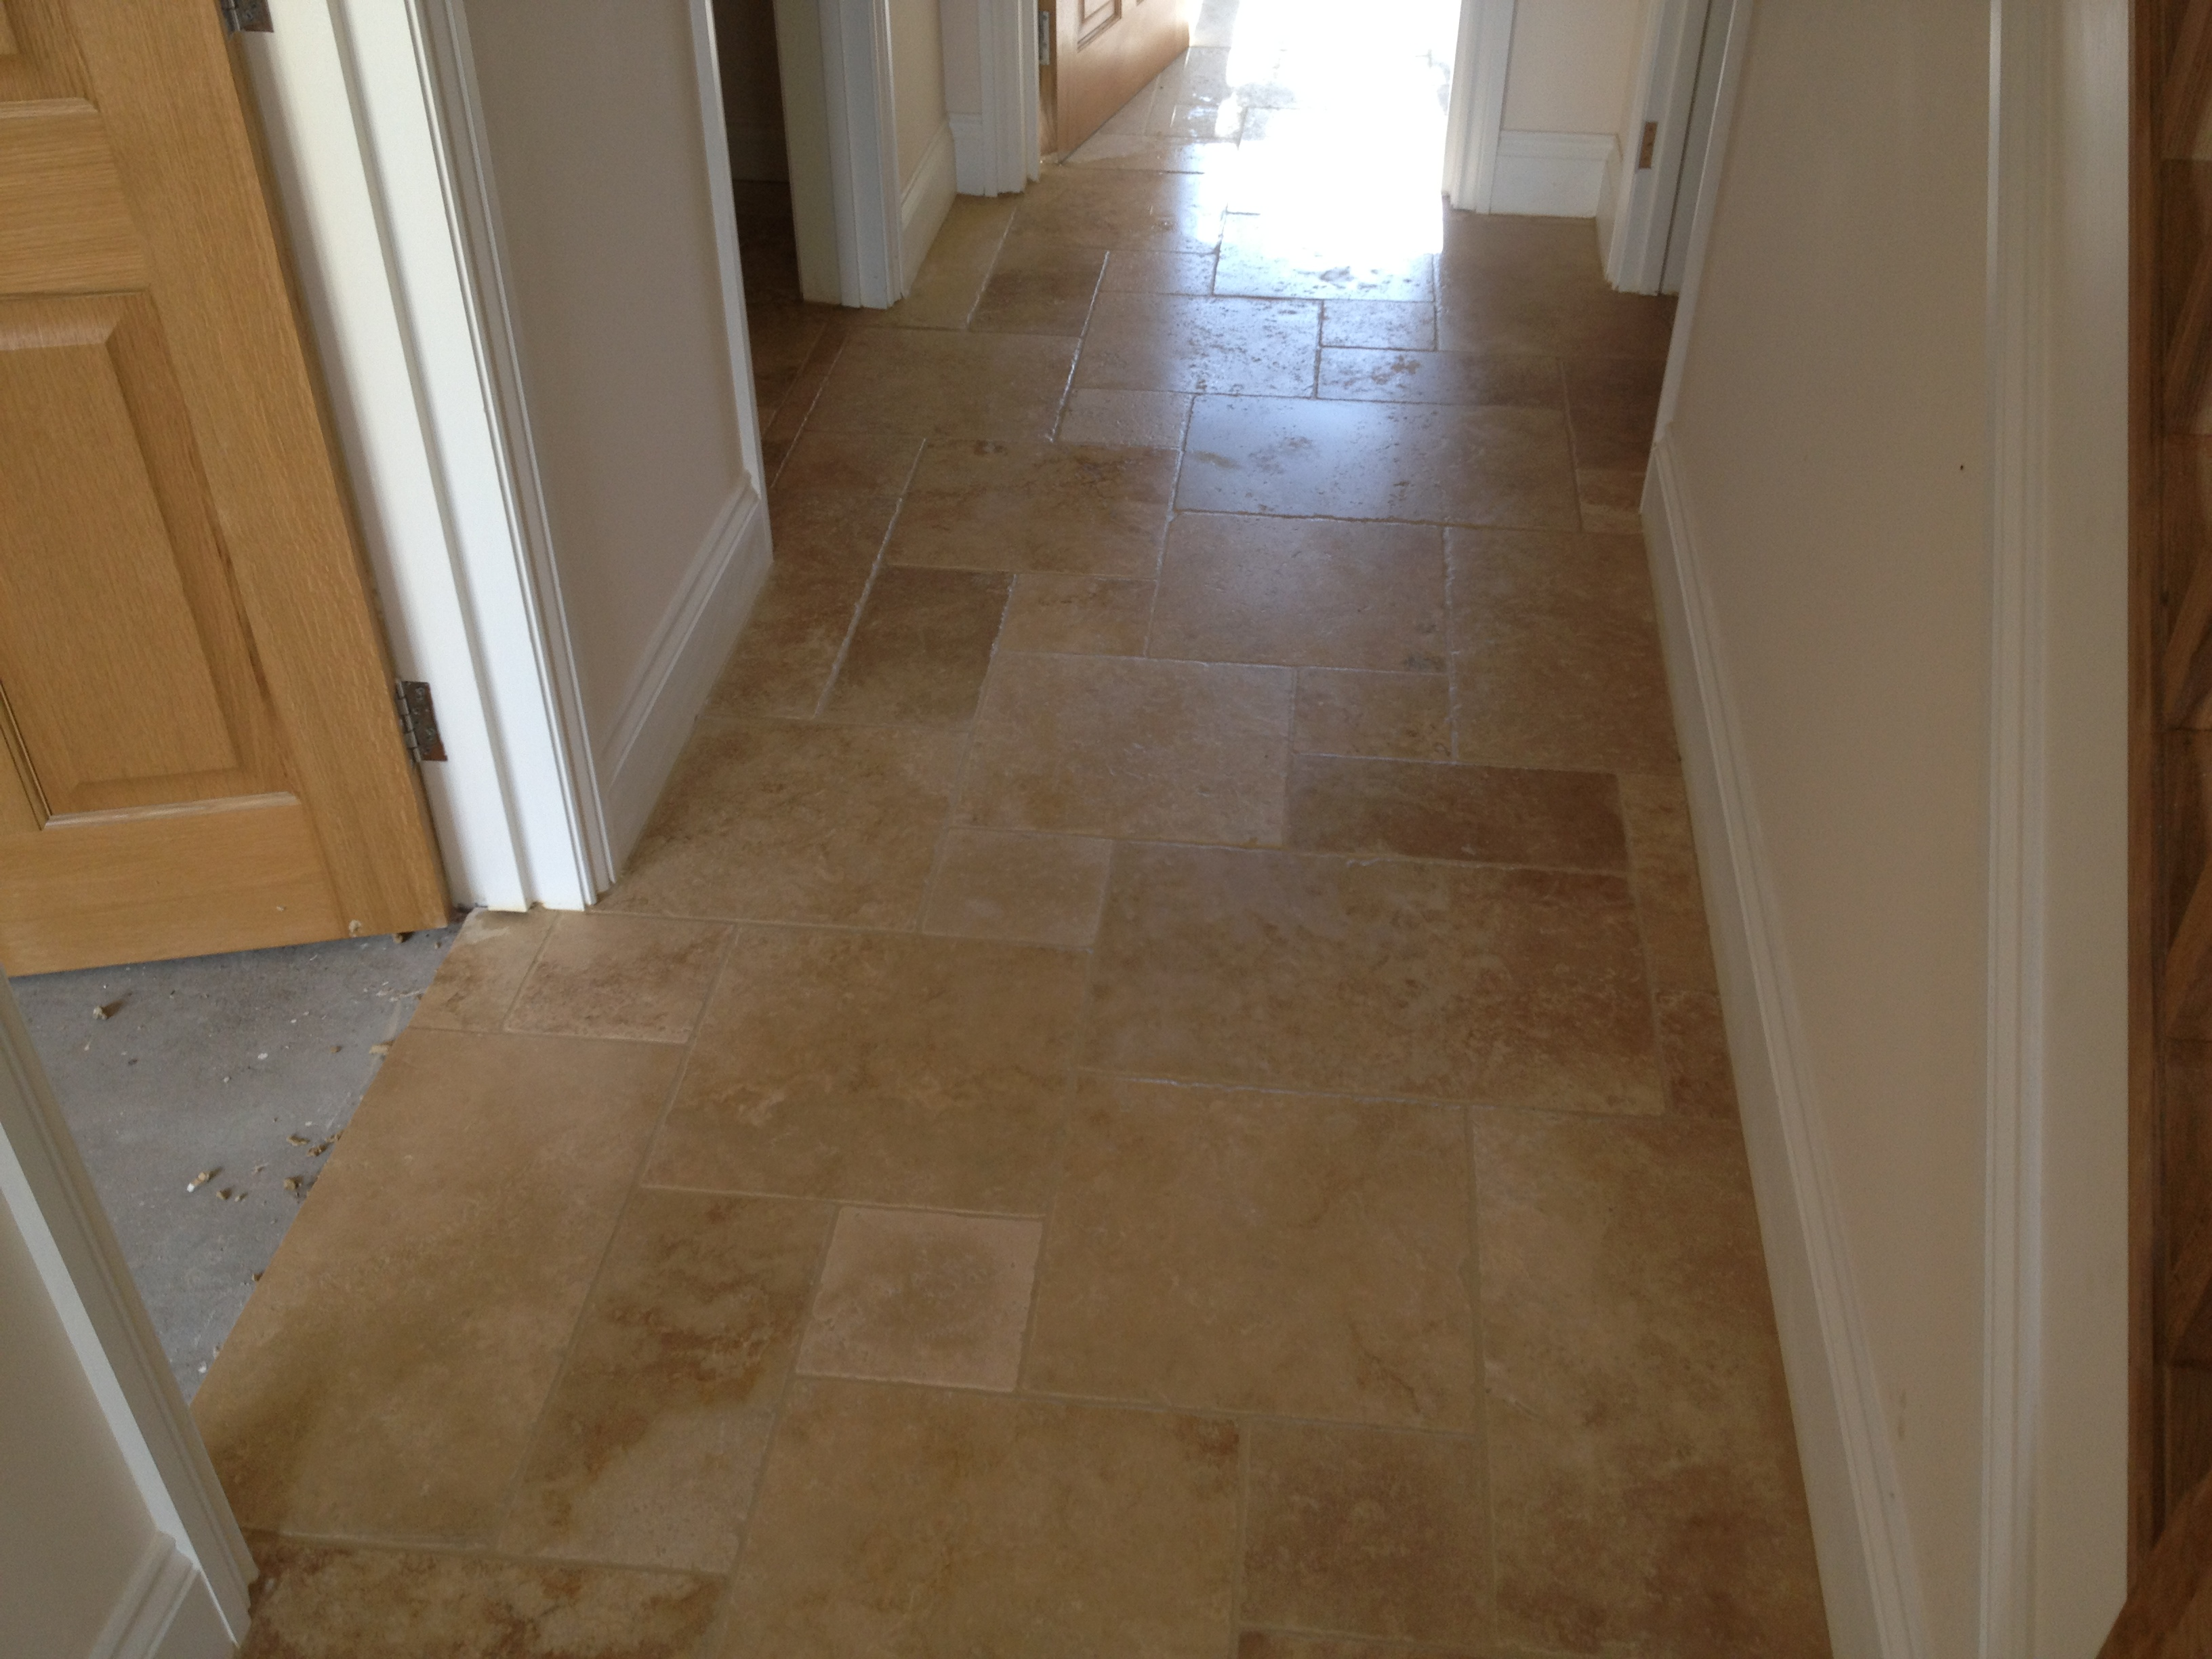 Cds Tiling Ripon Tiler All Your Tiling Needs Commercial And Domestic